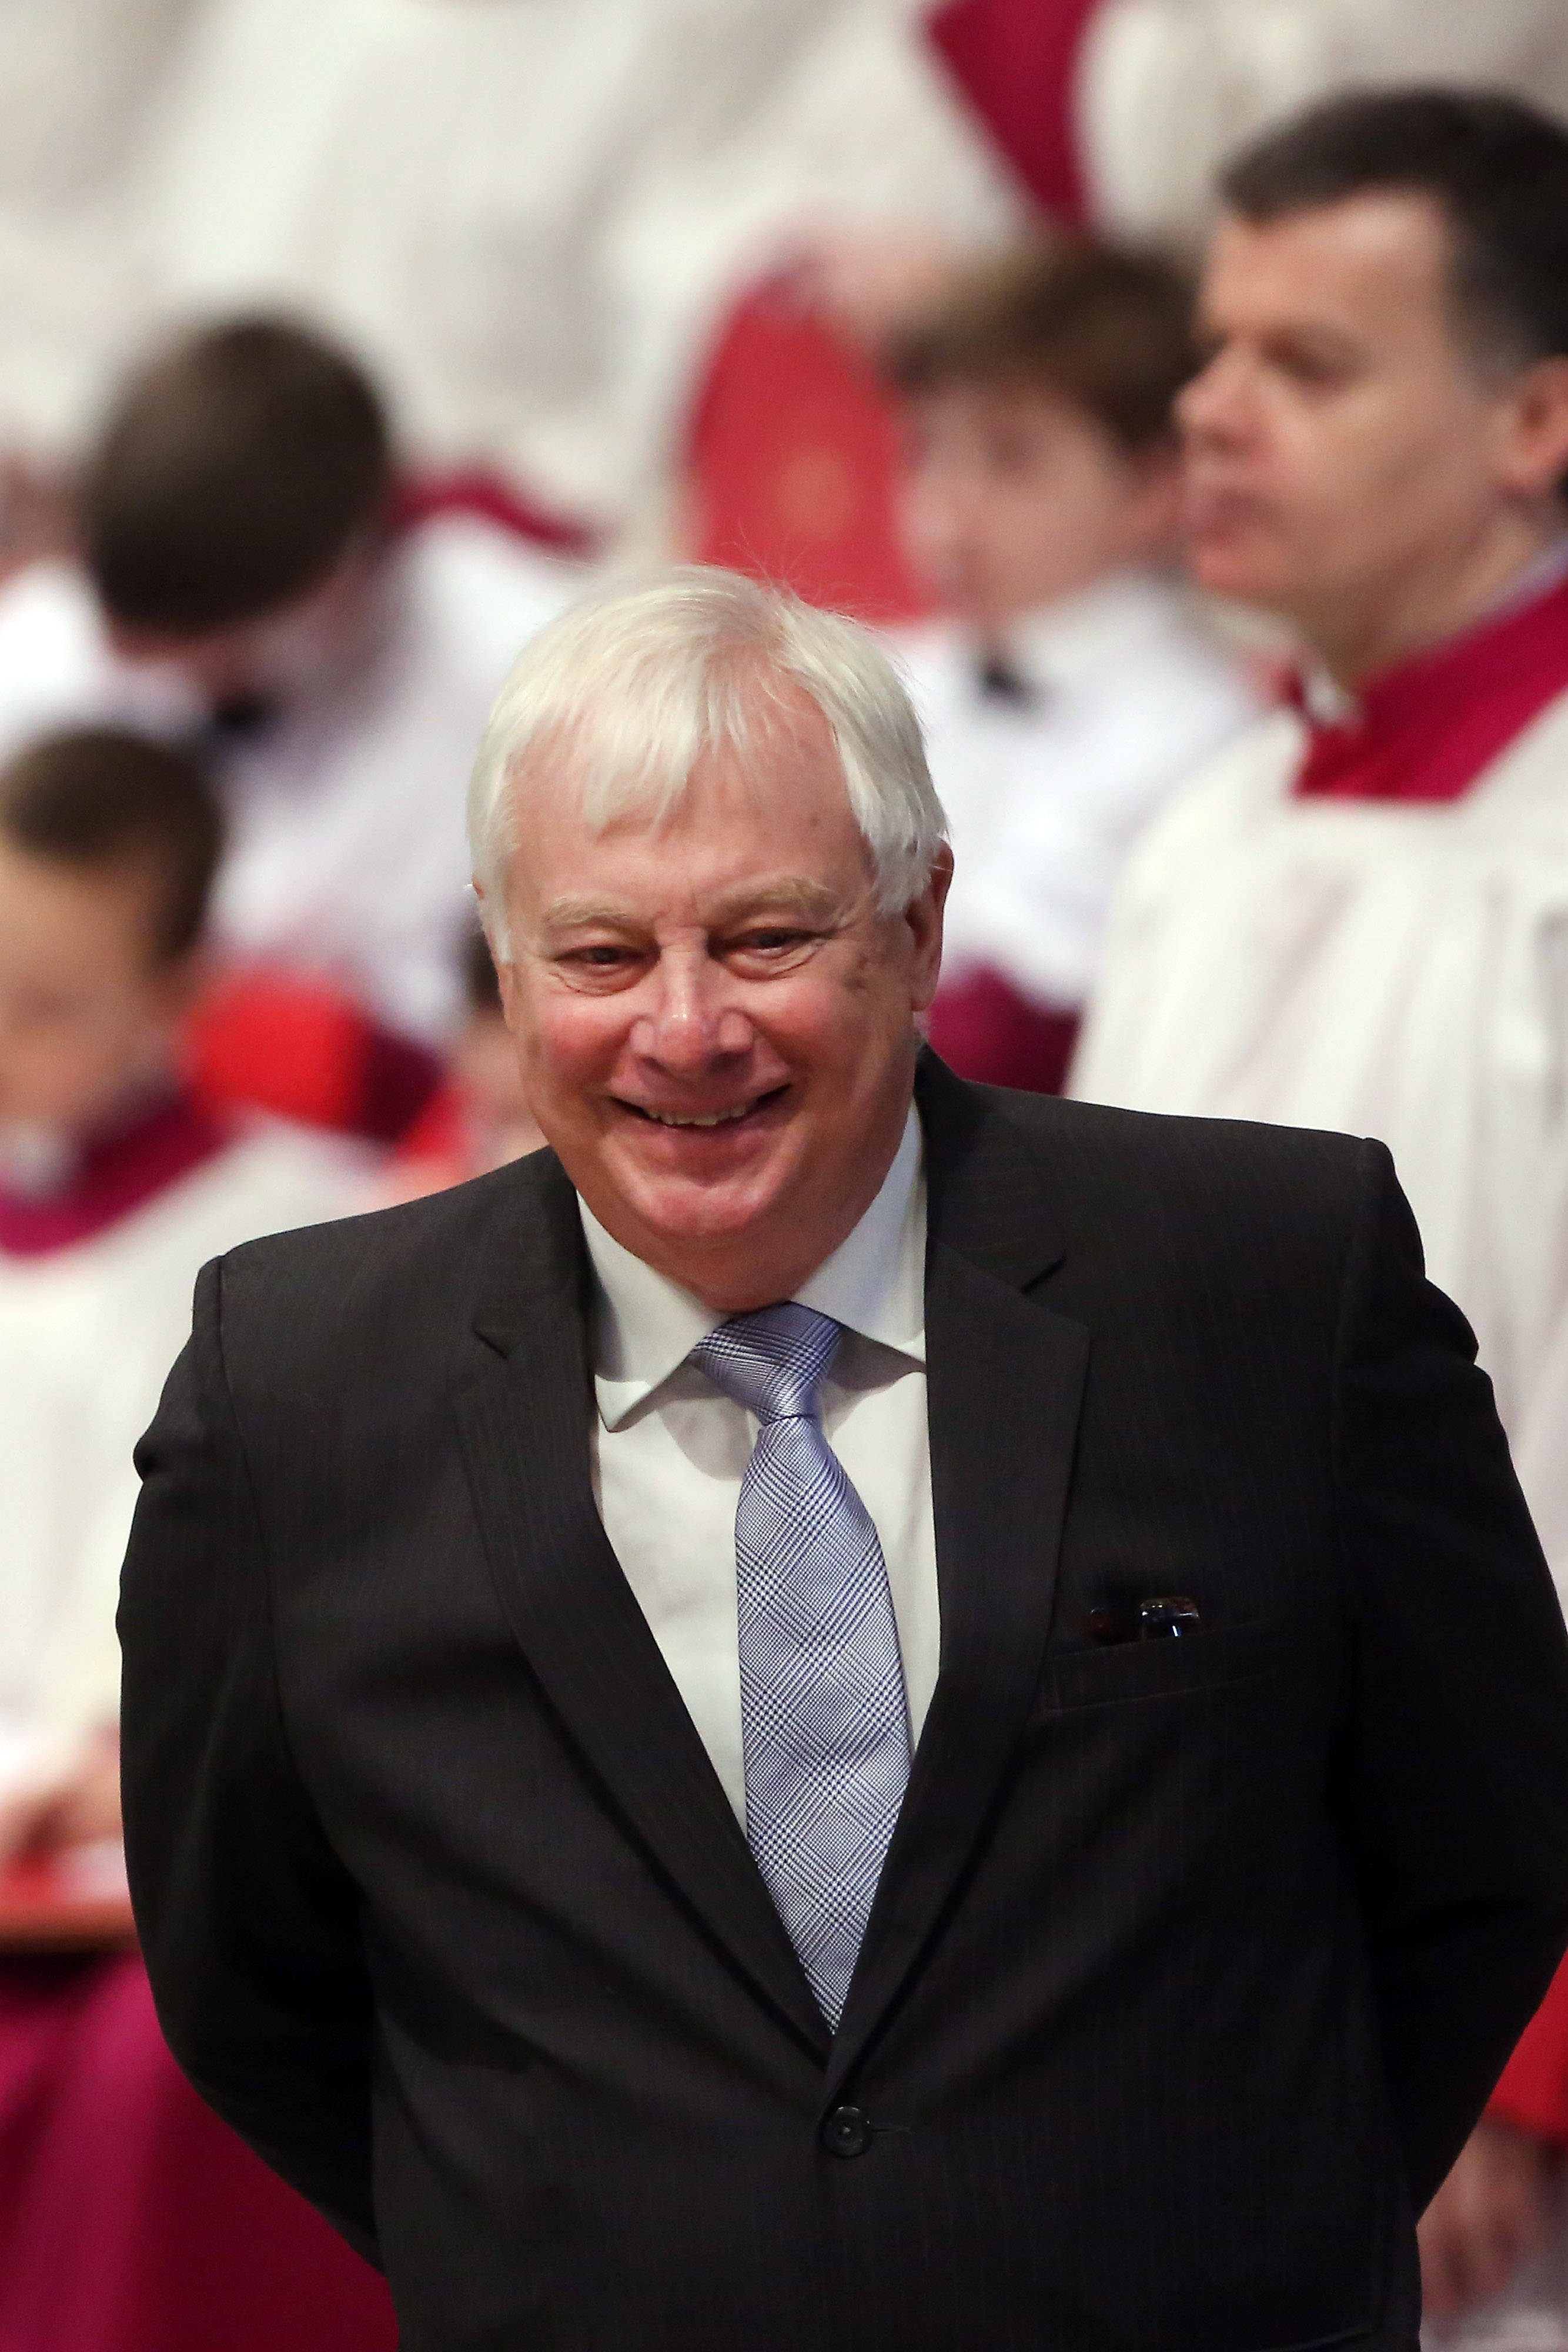 Lord Chris Patten attends a mass with newly appointed cardinals held by Pope Francis at St Peter's Basilica on February 23, 2014 in Vatican City, Vatican.